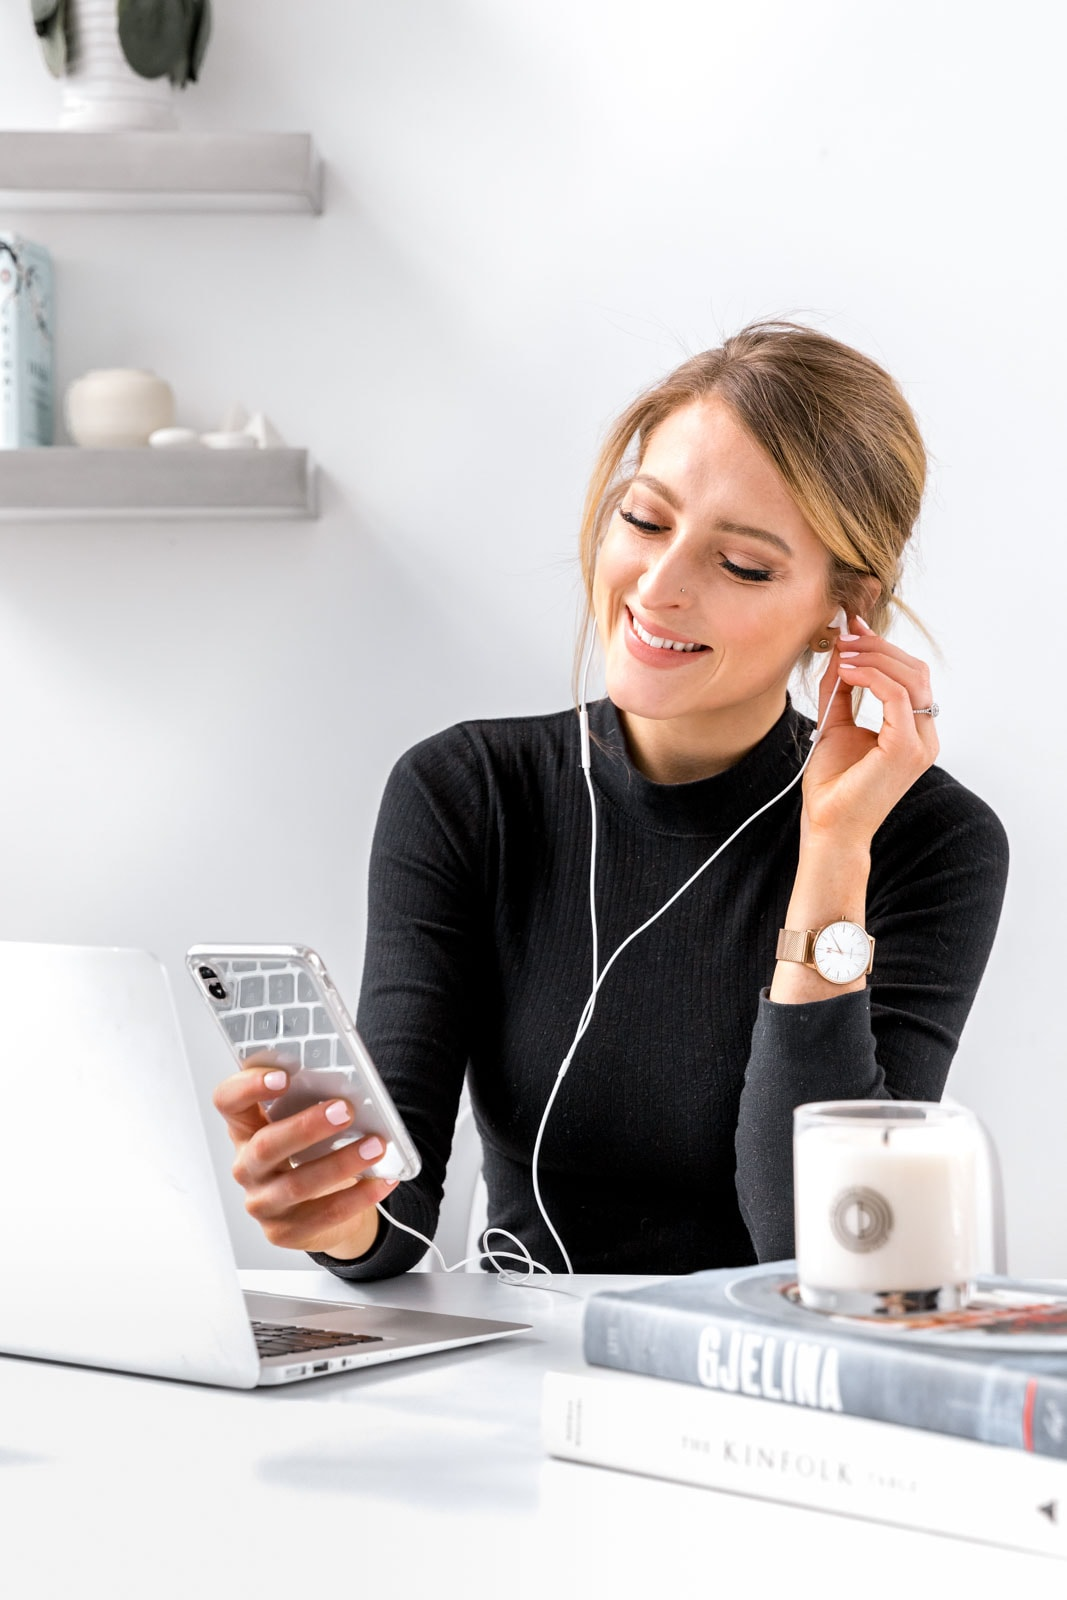 As an entrepreneur, your time is valuable. That's why we rounded up these 5 podcasts for entrepreneurs to maximize your time, so that you can listen AND learn.